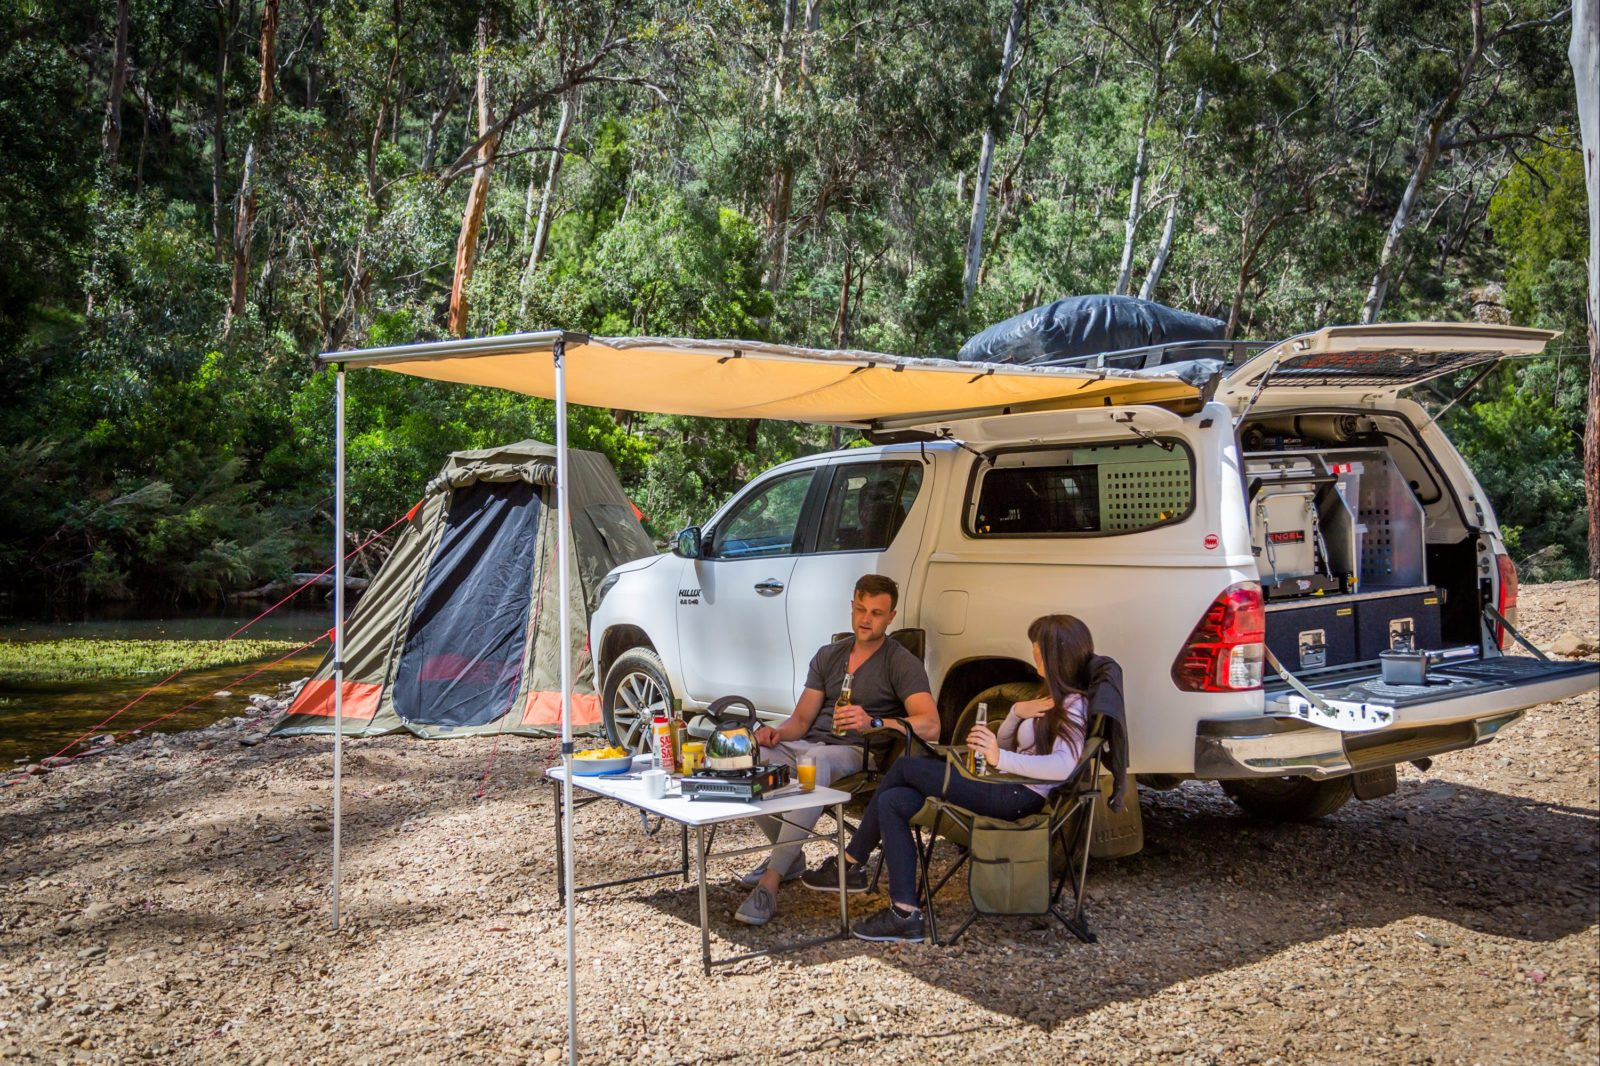 Britz 4Wd Outback with Tent - Sleeps up to 5